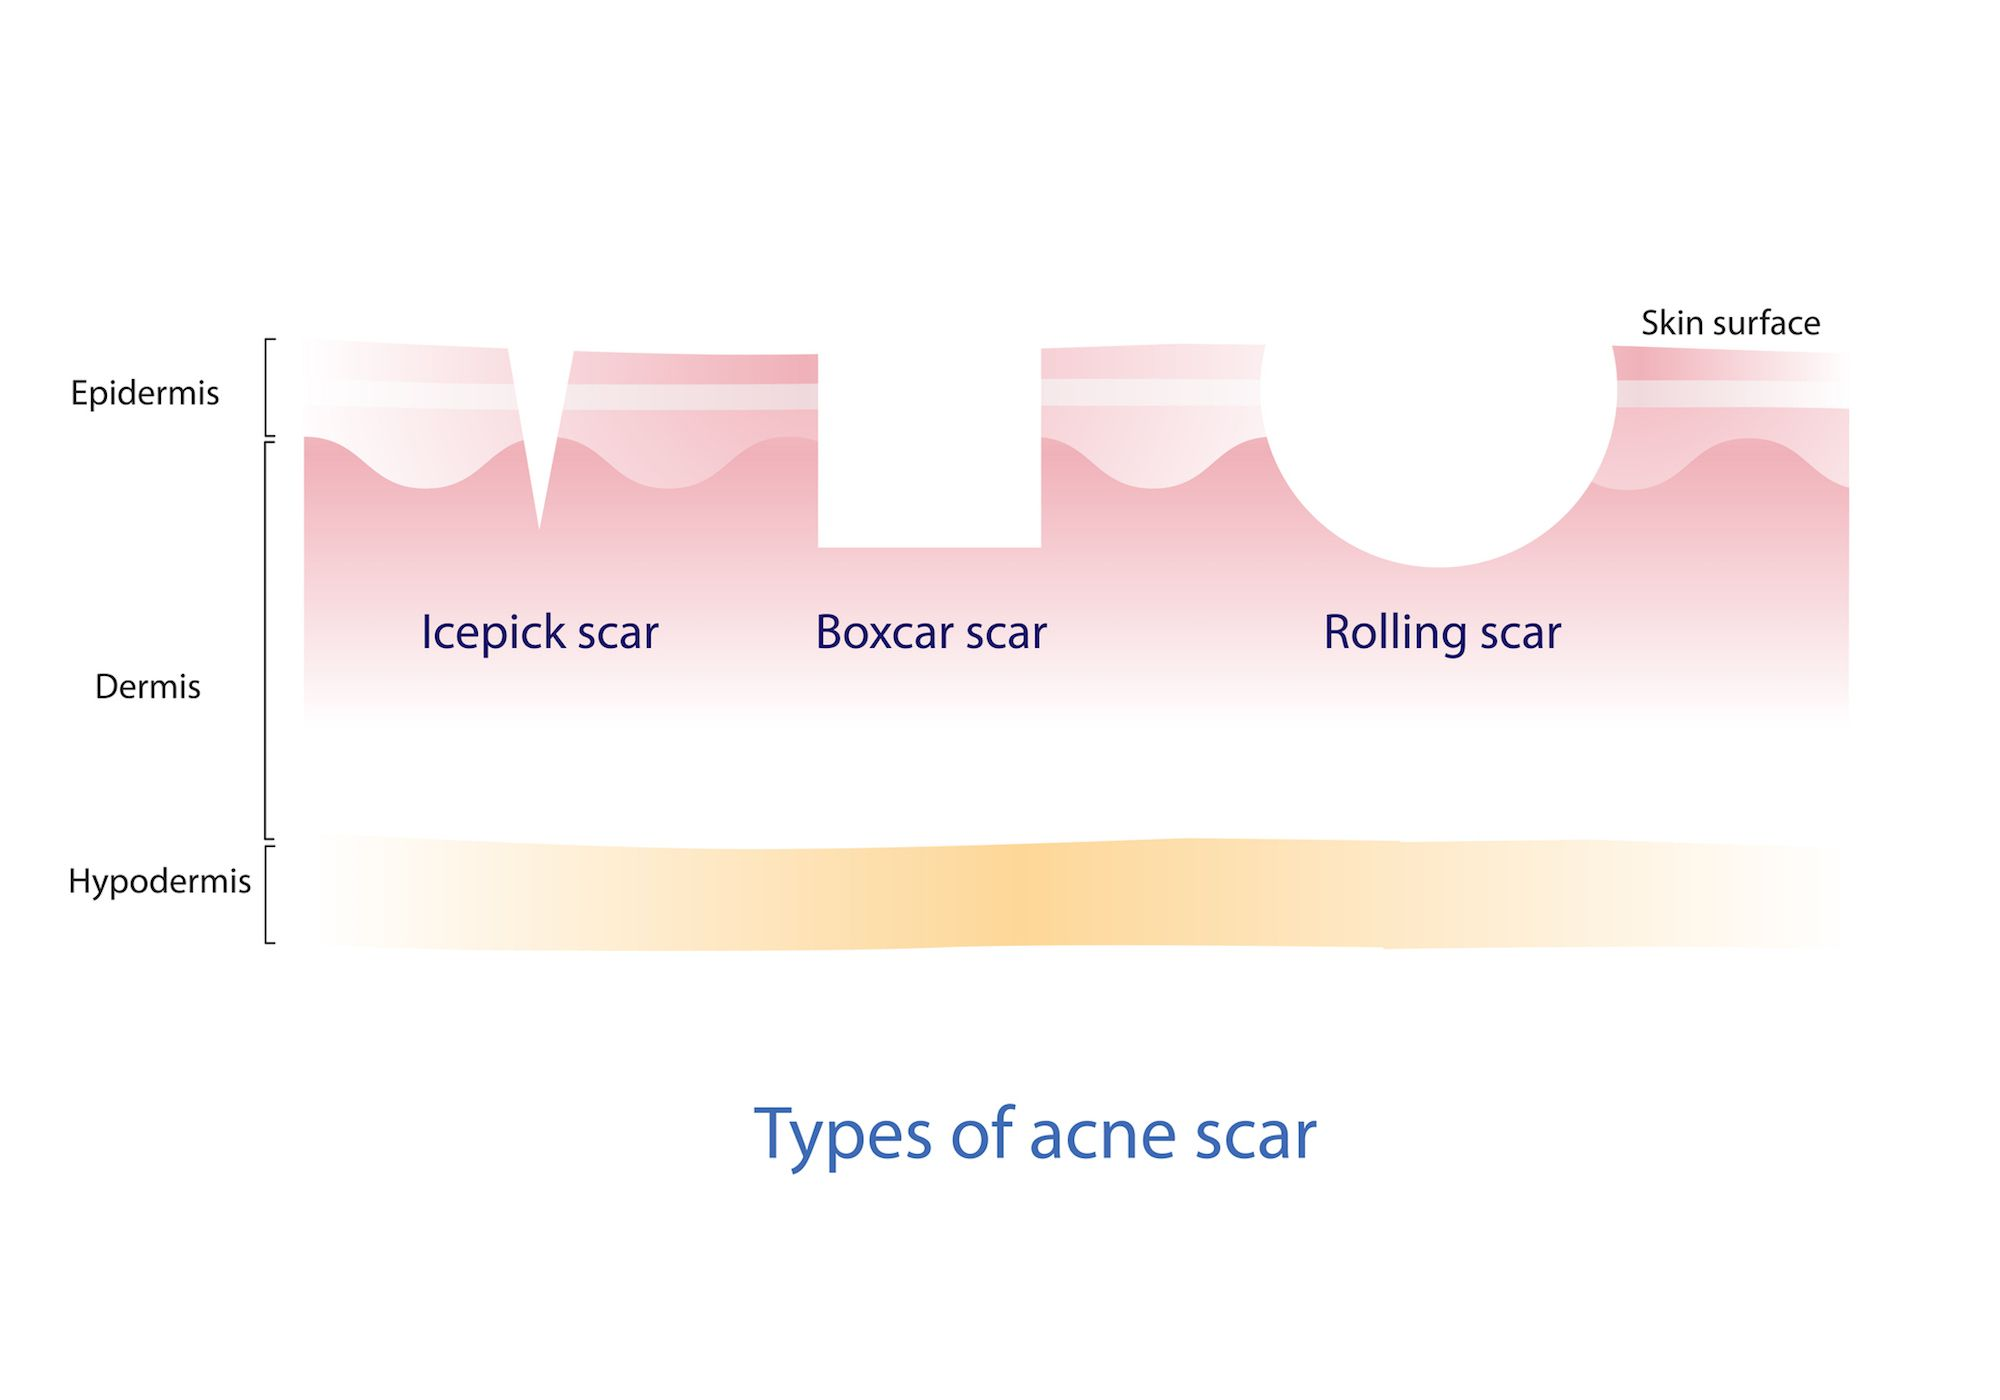 Illustration of different types of acne scars